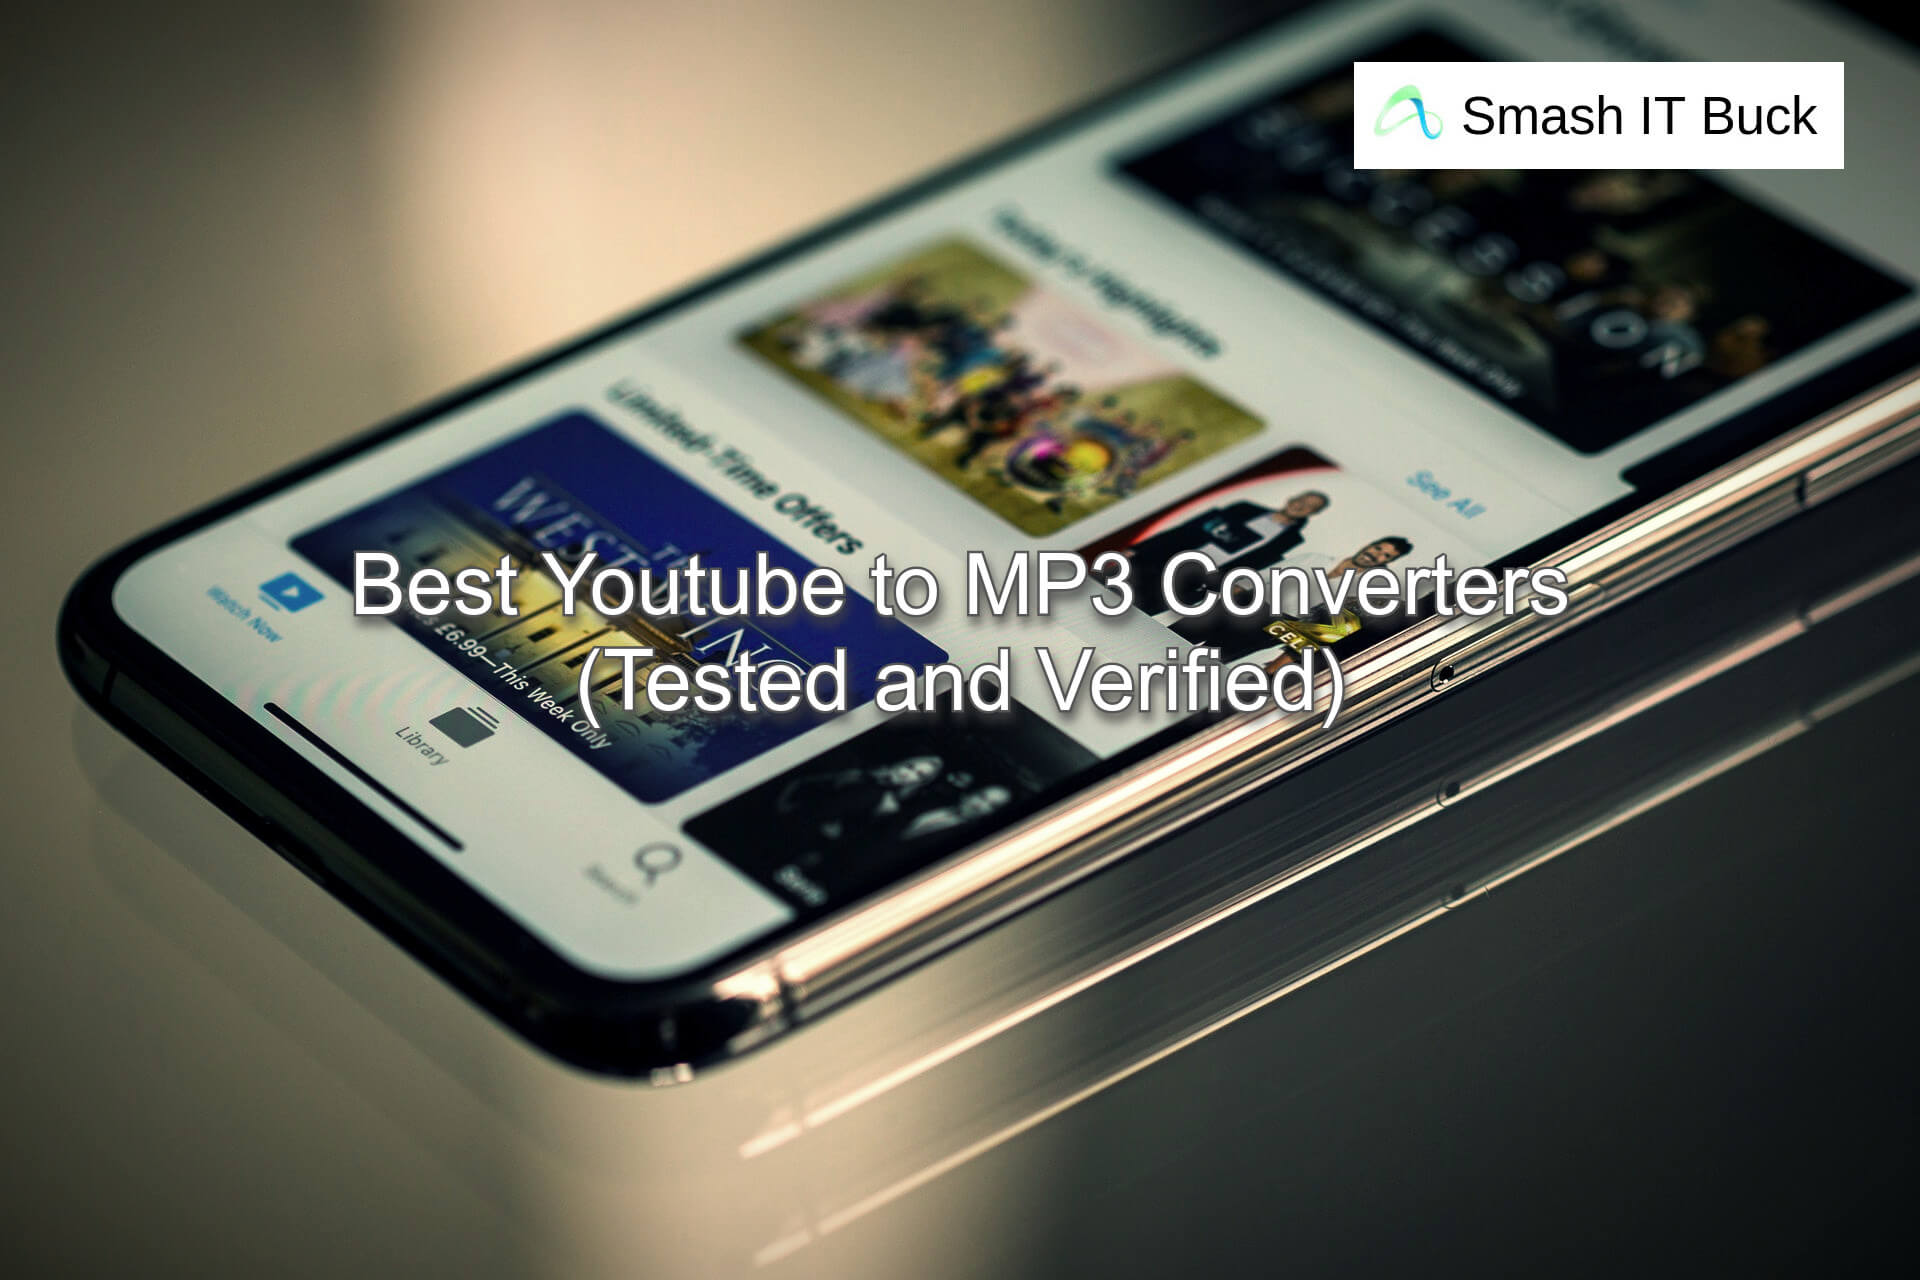 Best YouTube to MP3 Converters of 2021